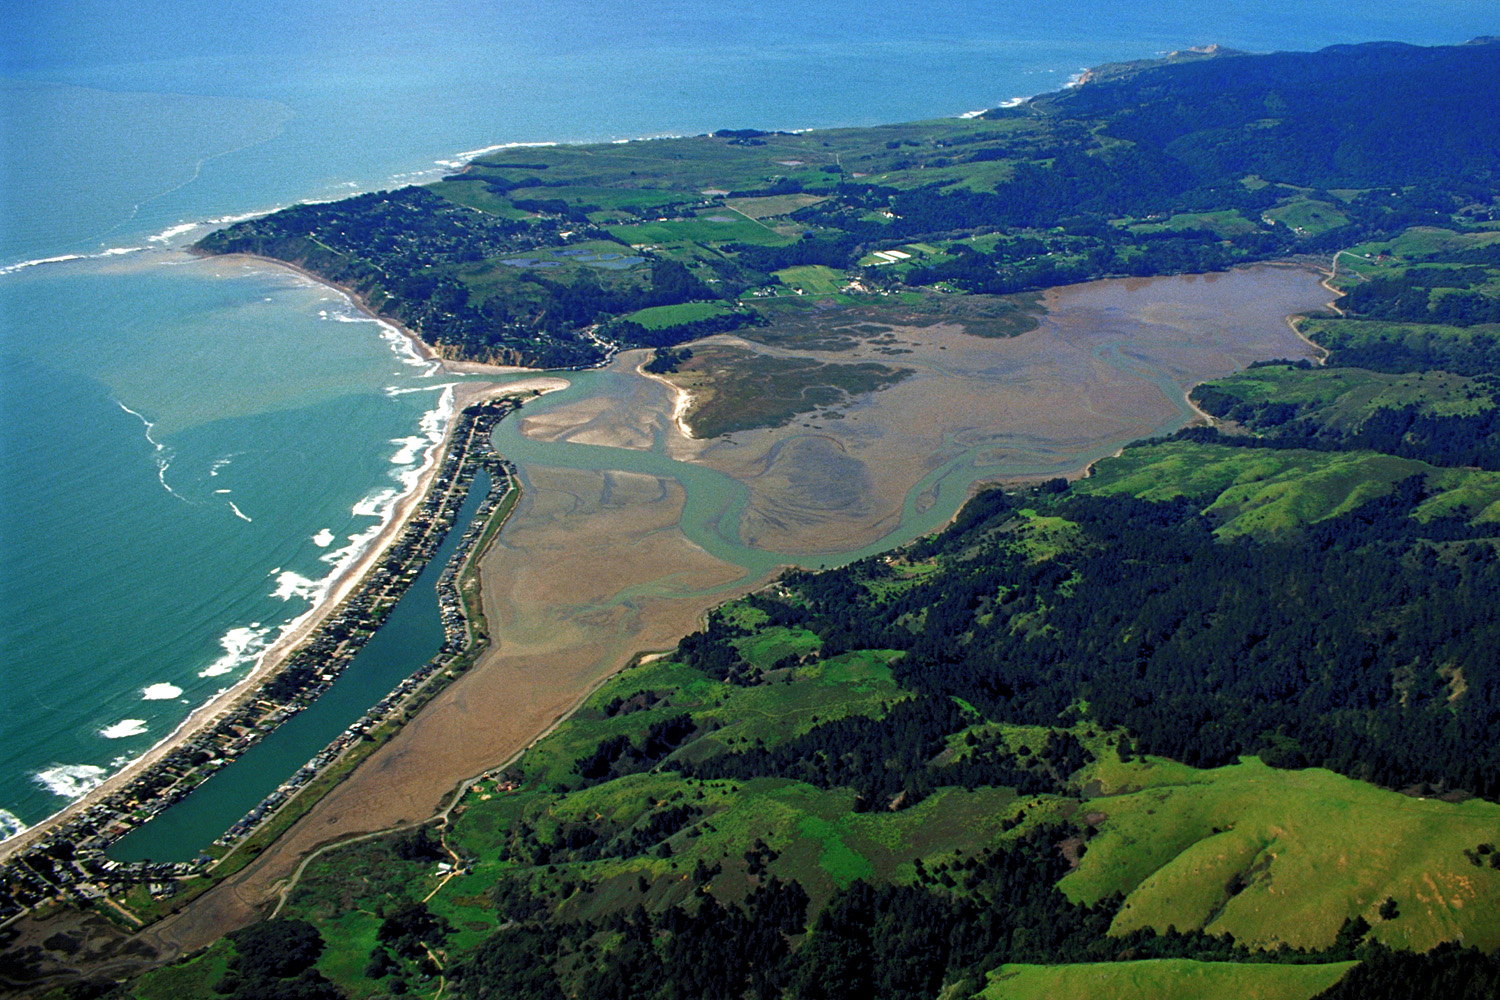 File:Bolinas California aerial view.jpg - Wikimedia Commons